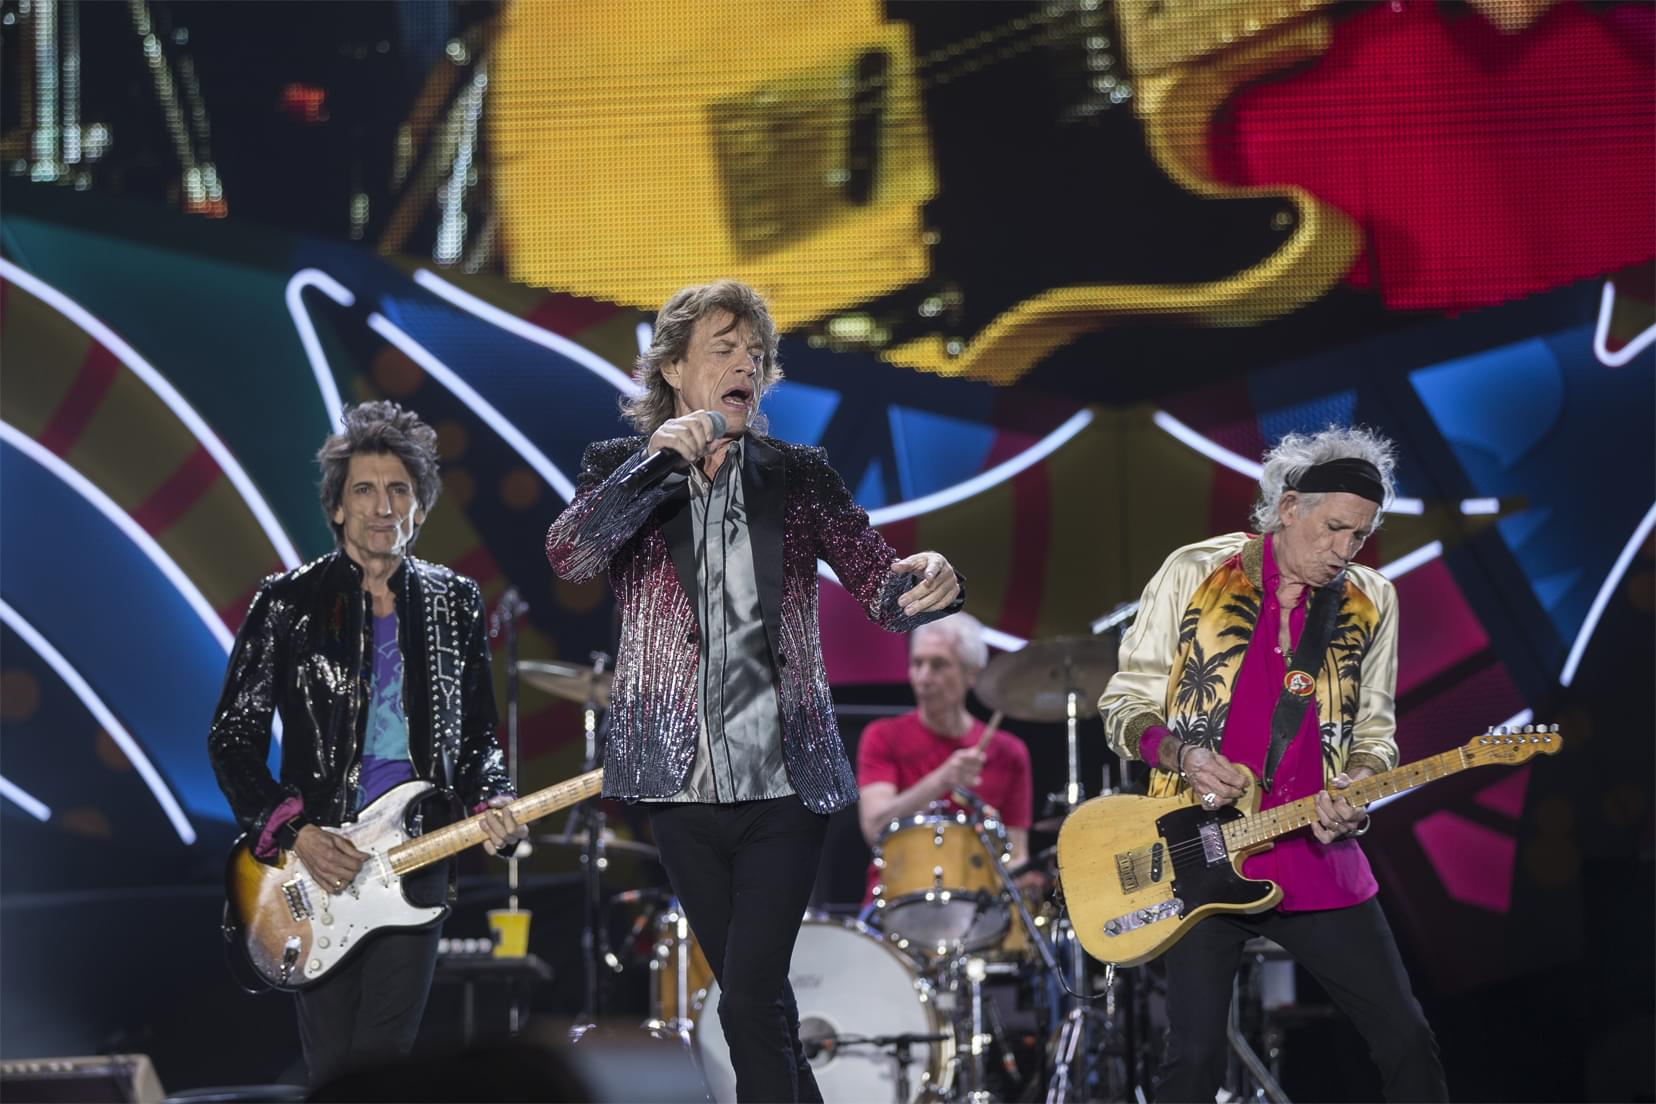 Rolling Stones Tour 2020 Rumors REPORT: The Rolling Stones' tour could have to wait until 2020 for